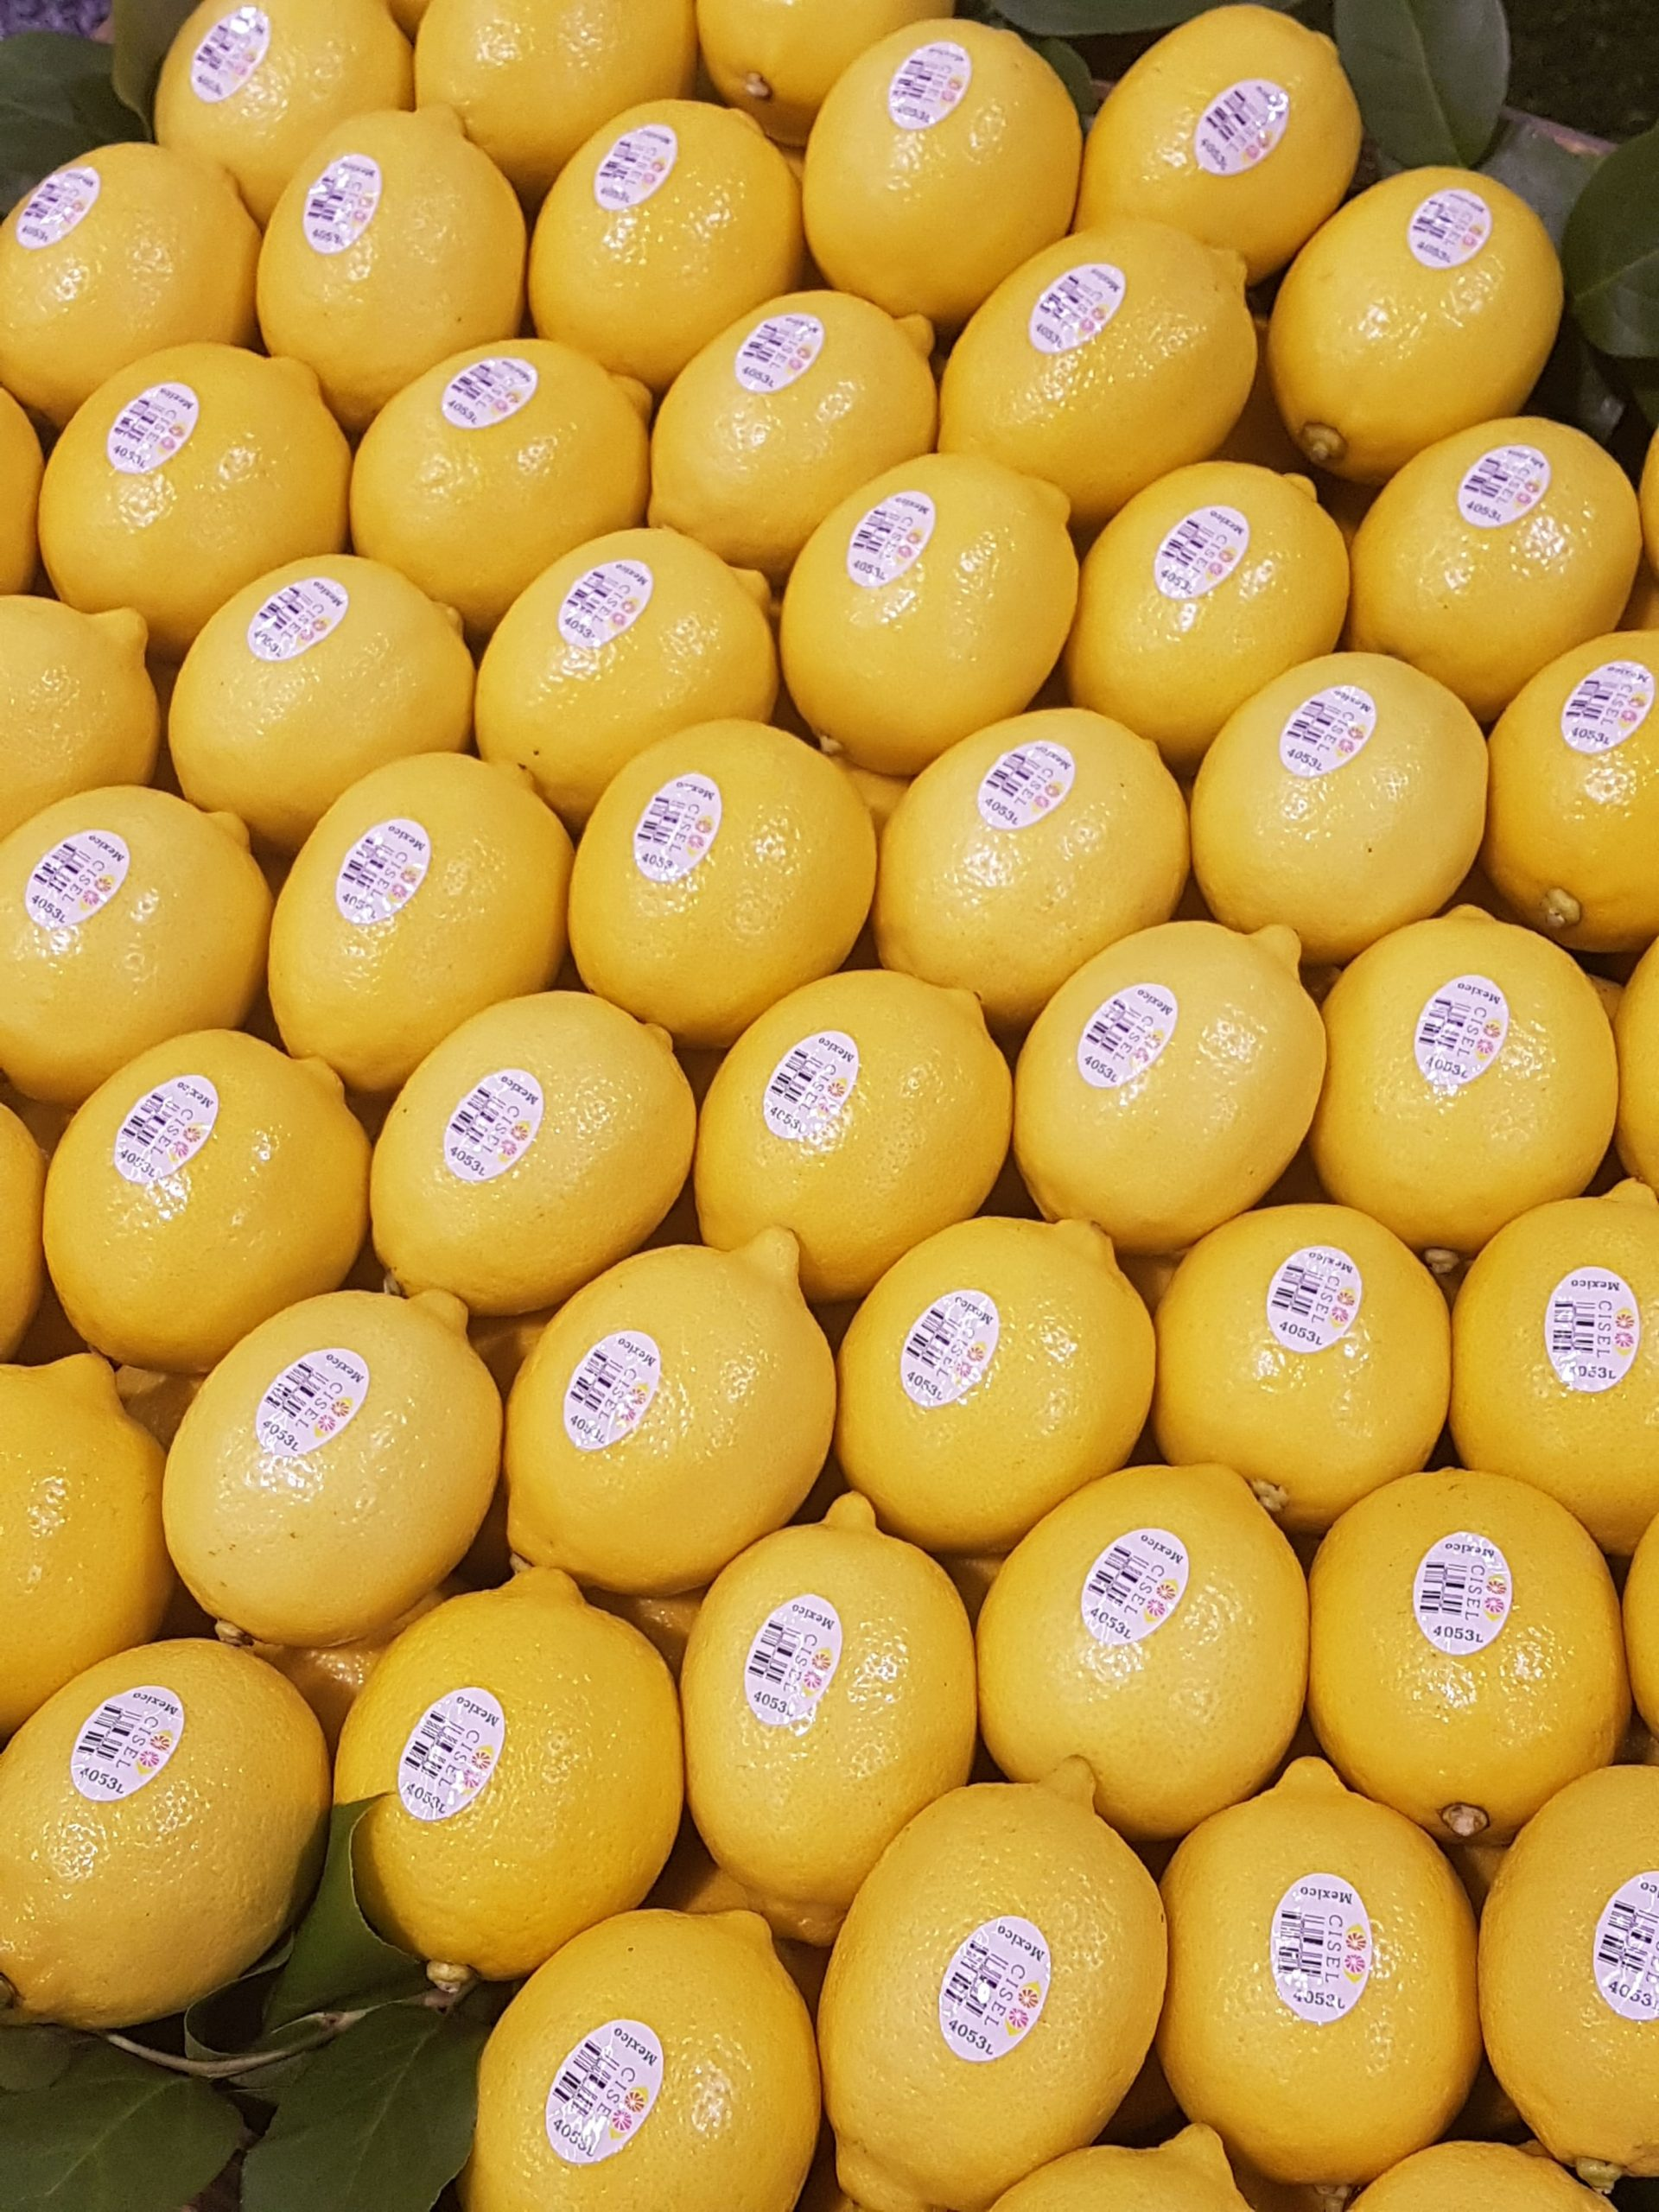 Rebounding Chinese economy to drive growth in citrus demand